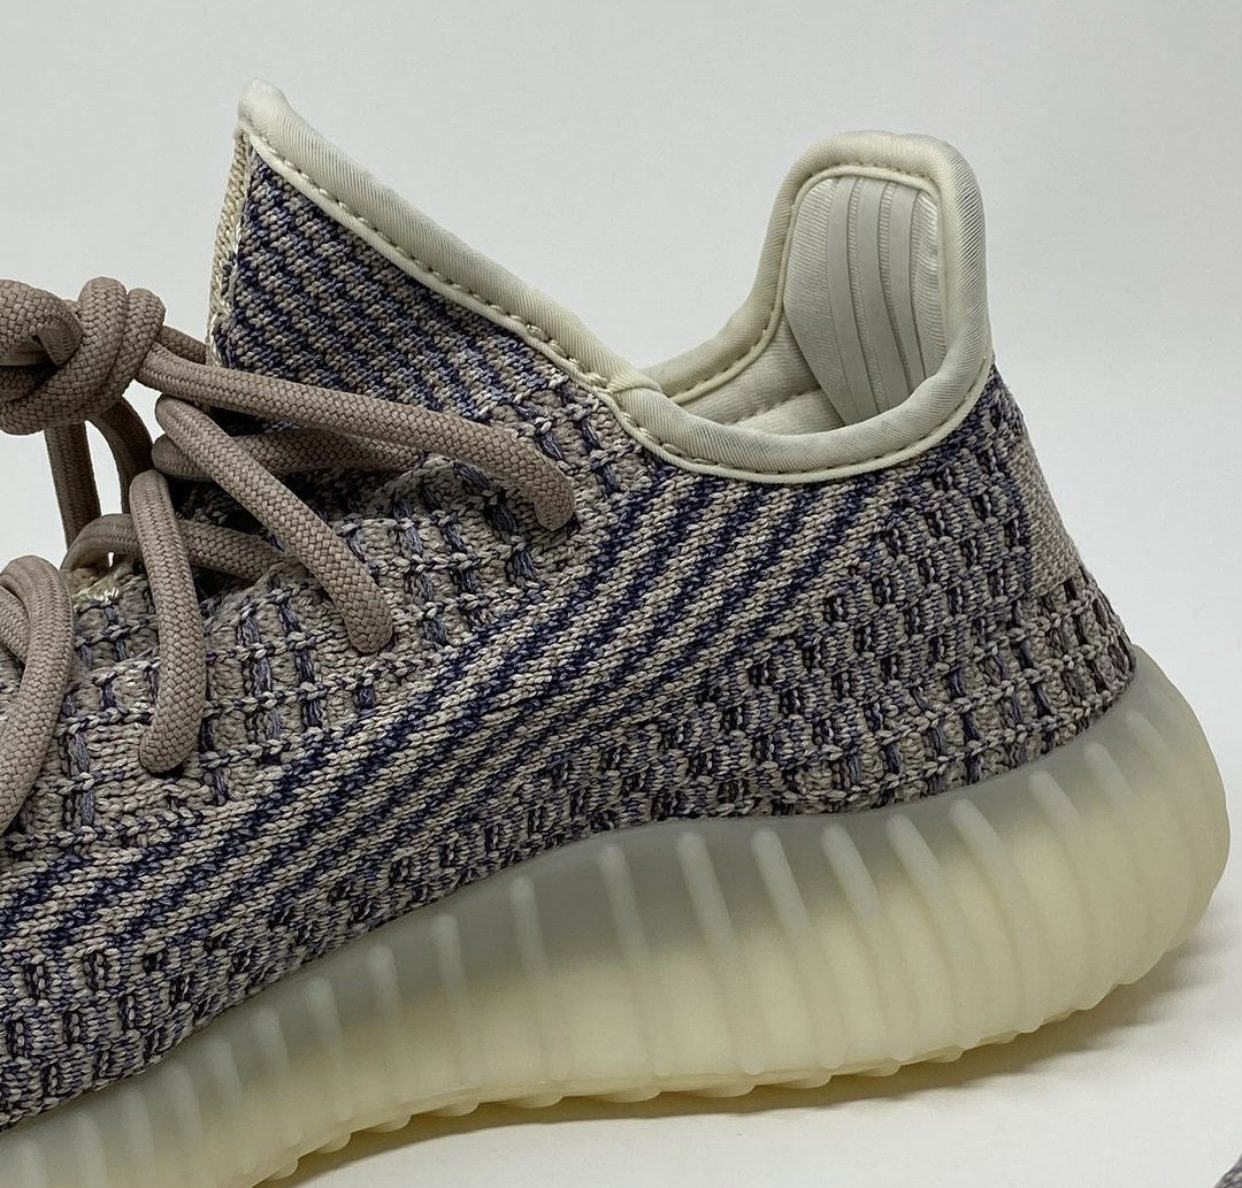 adidas Yeezy Boost 350 V2 Ash Pearl GY7658 Release Date